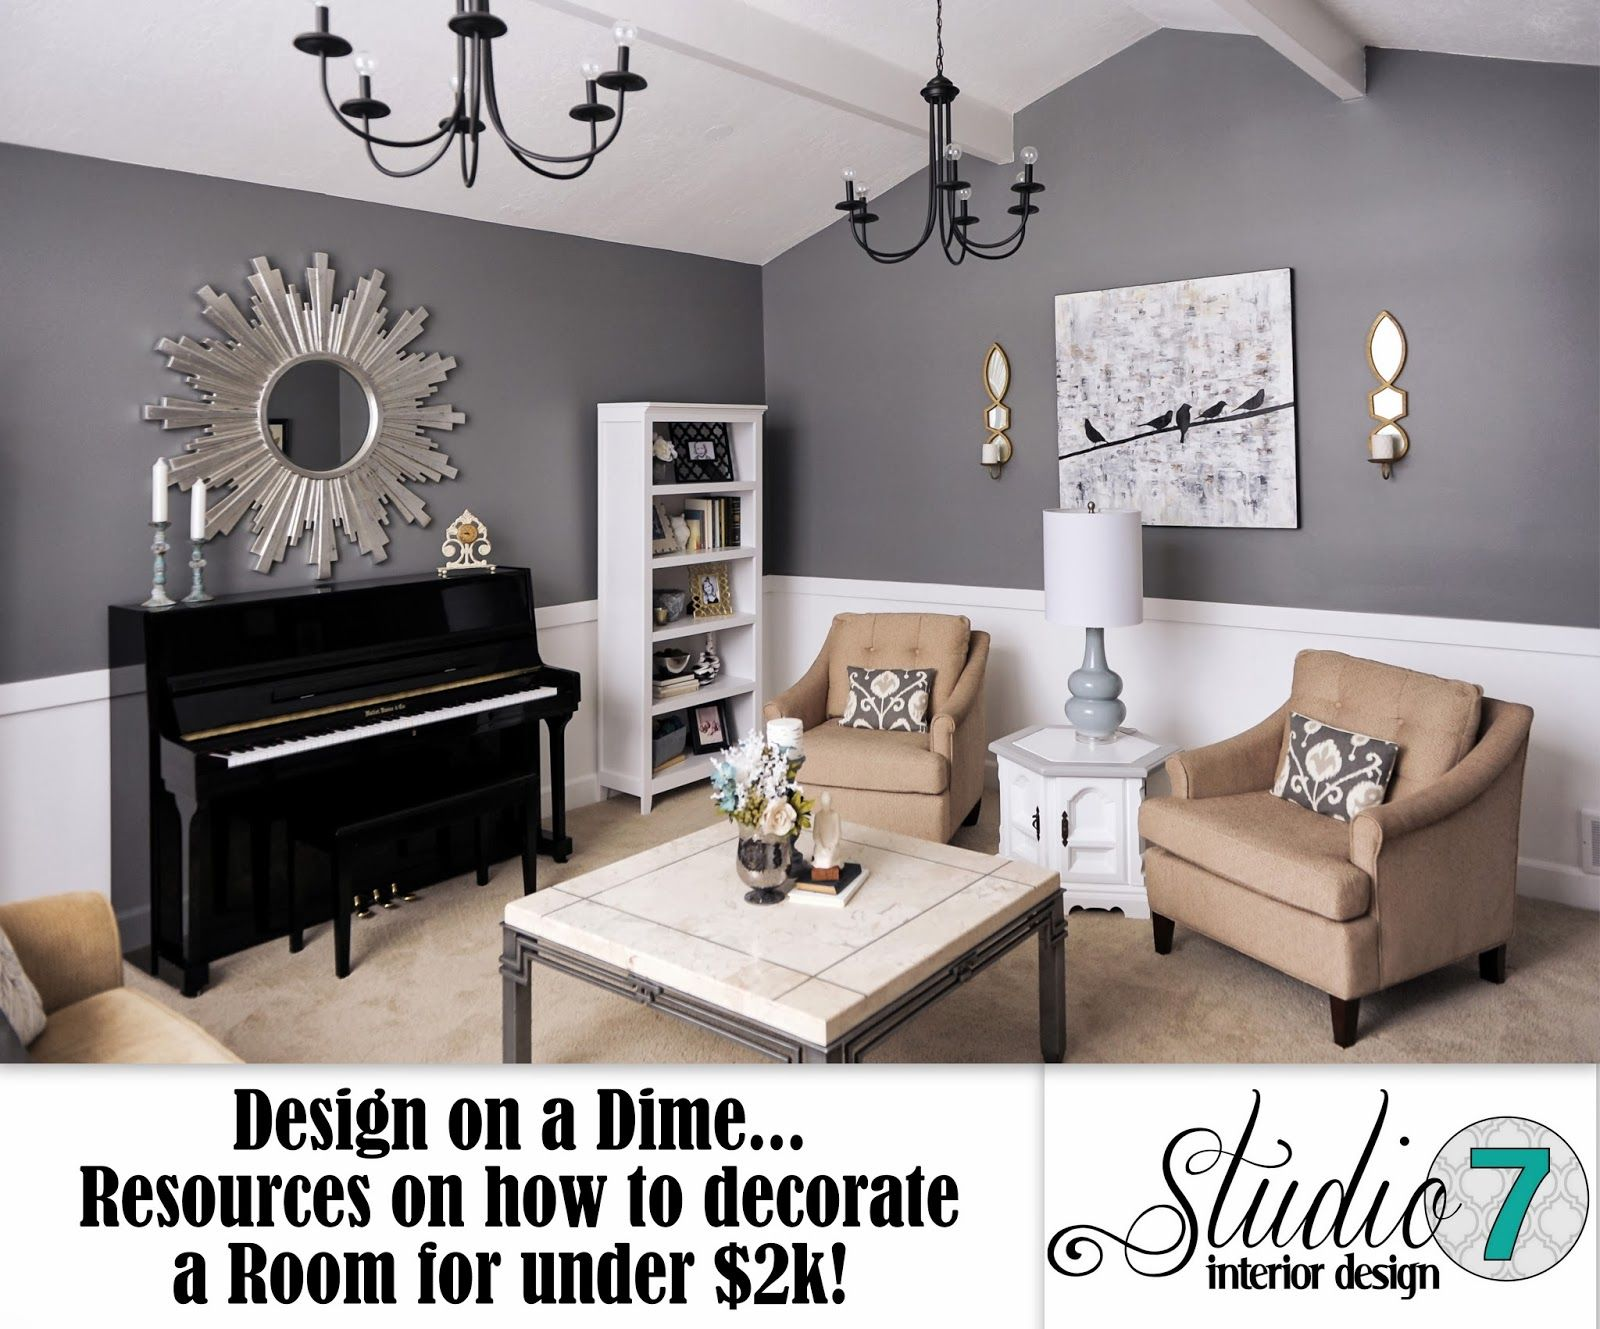 design on a dime, living room, white, gray, charcoal, gold